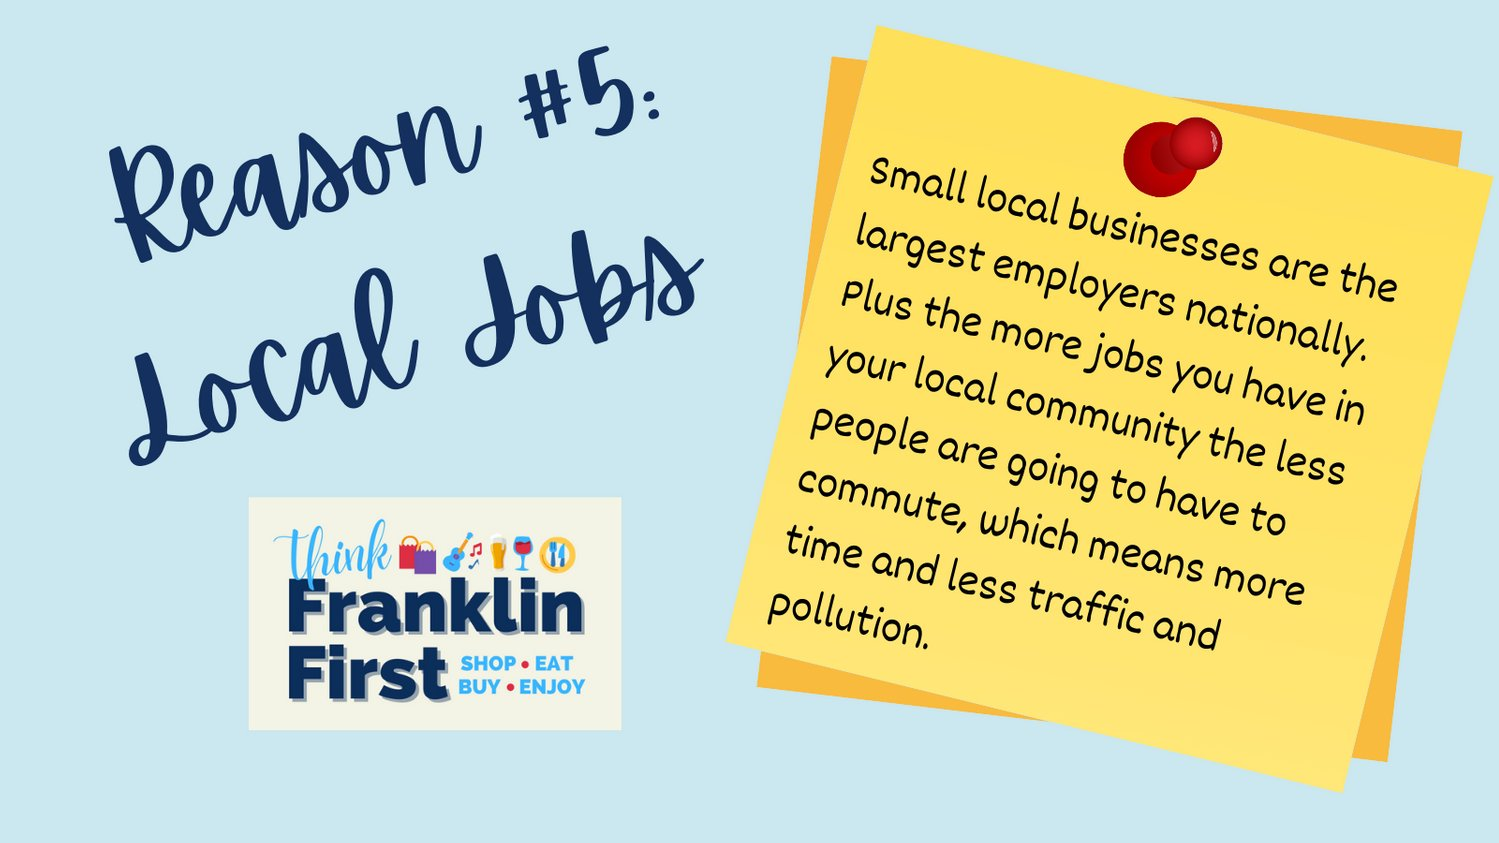 Reason#5 to #ThinkFranklinFirst